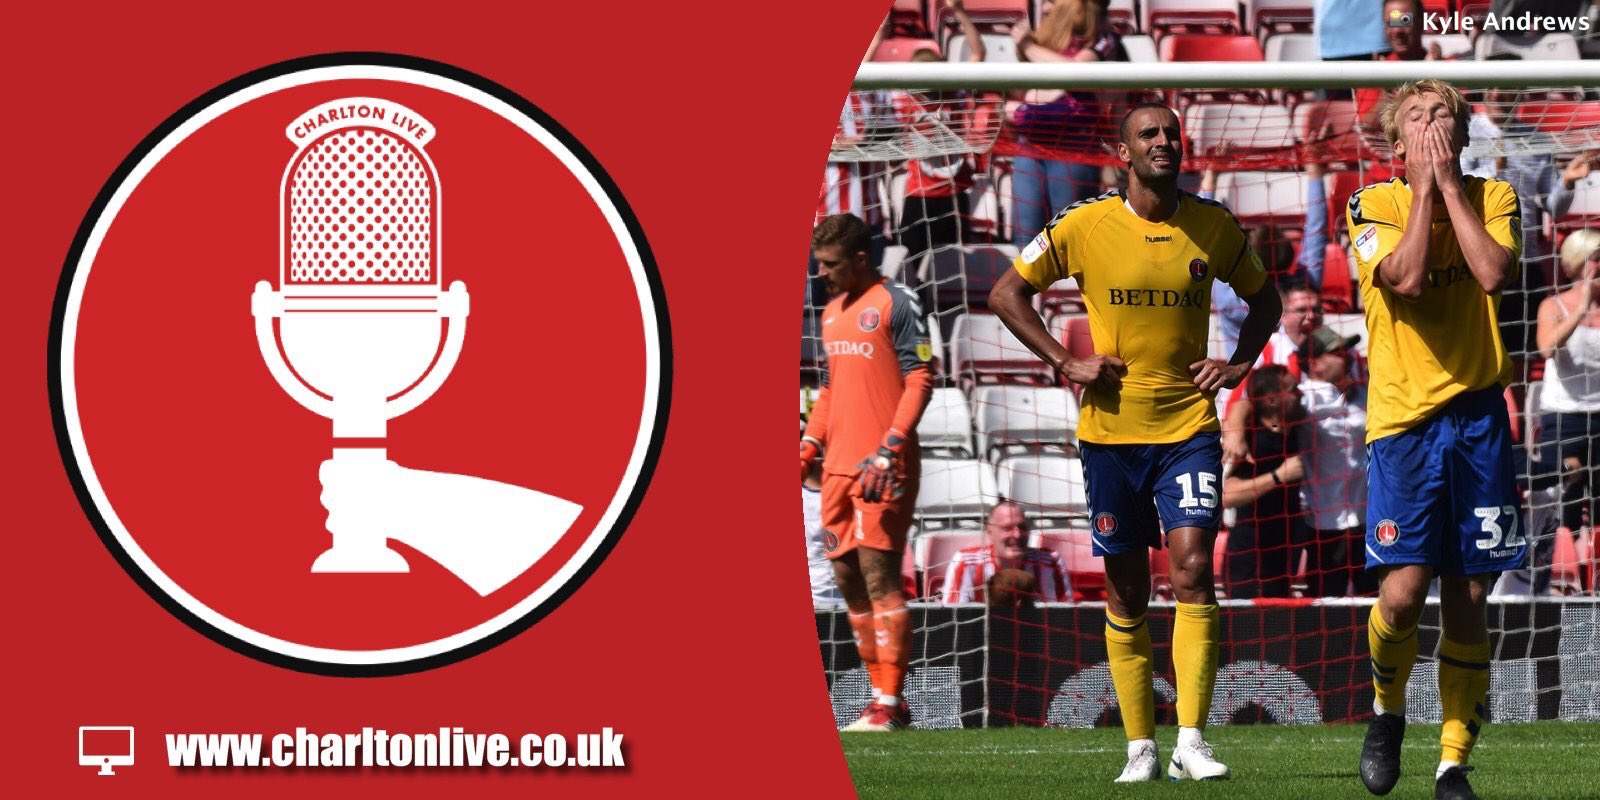 Join Louis Mendez, Tom Wallin and Nathan Muller as they discuss the heartbreaking, late opening day defeat at Sunderland. They hear commentary highlights of the […]